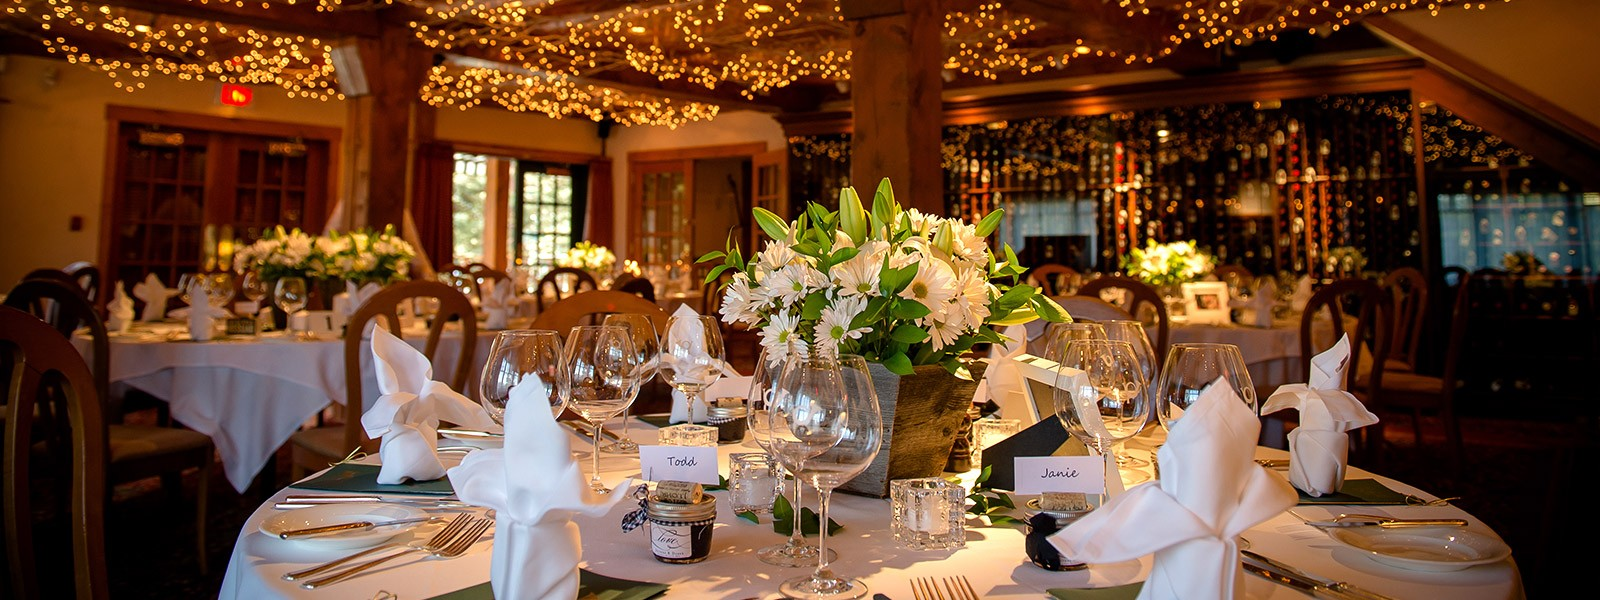 lake louise weddings - wedding packages | the post hotel